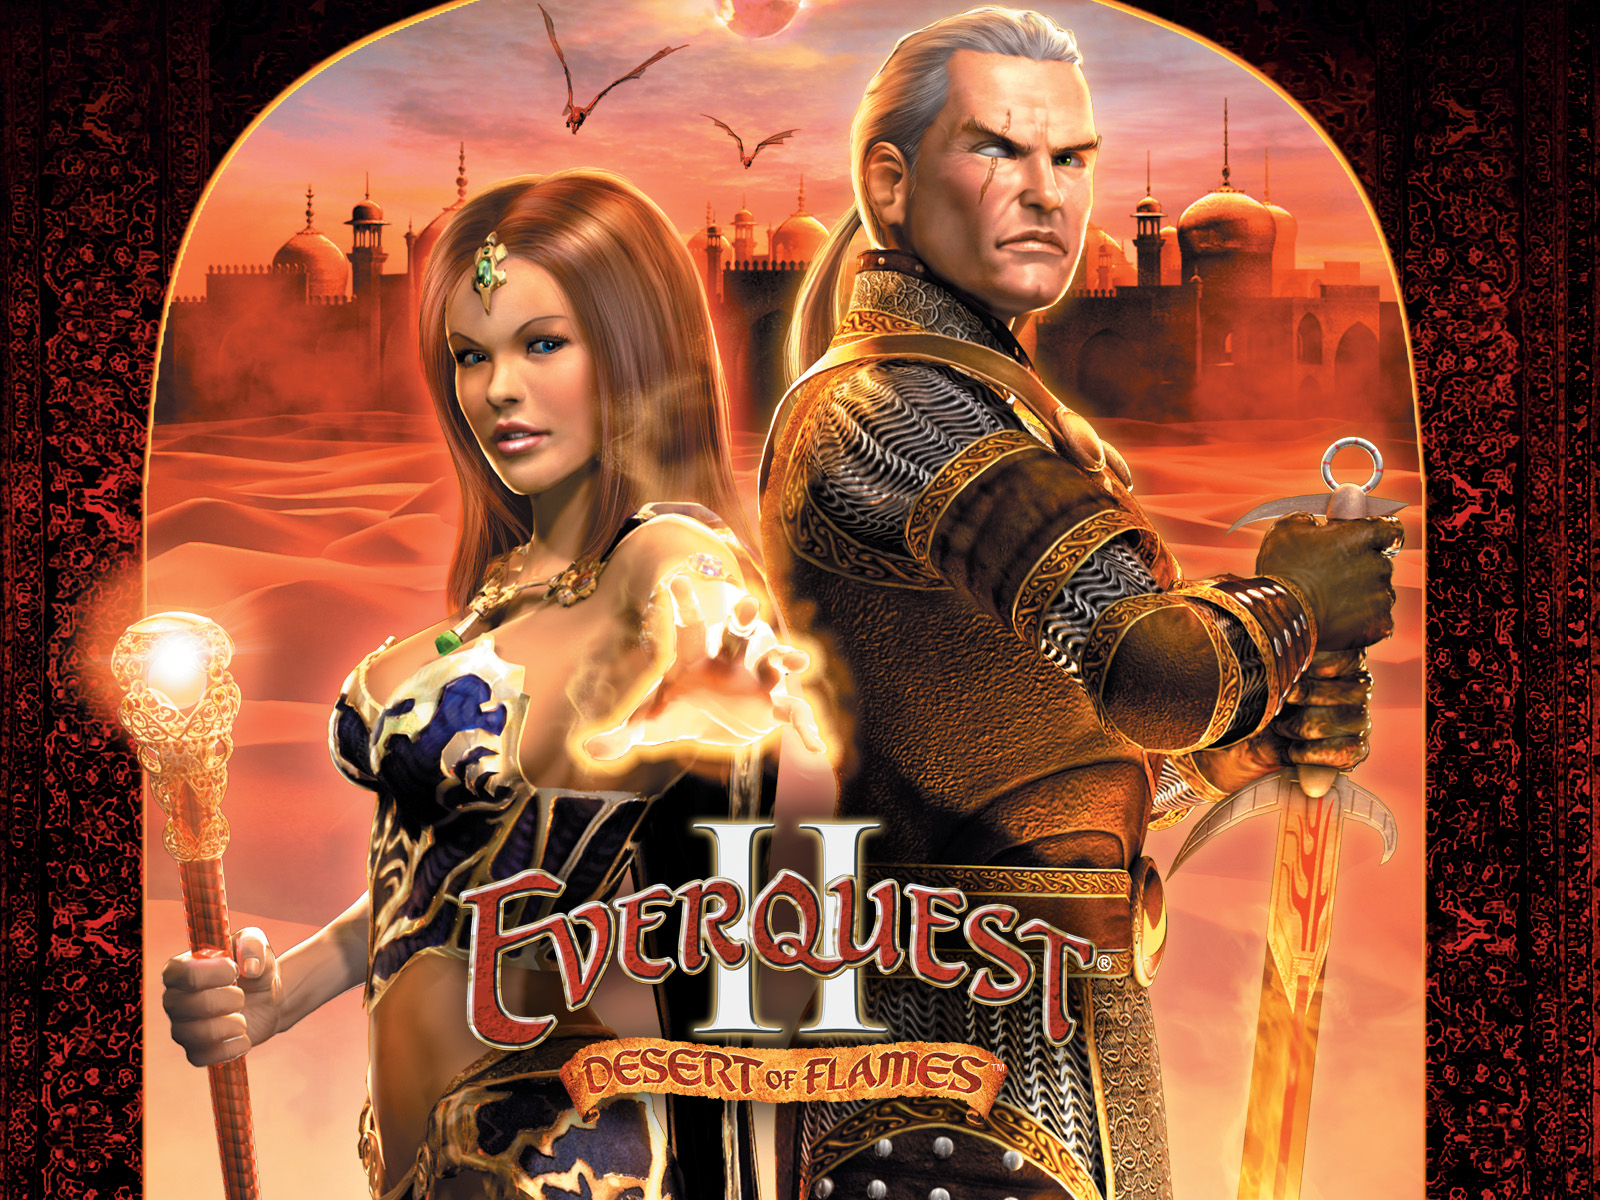 I can not run the game. Black screen. | everquest 2 forums.